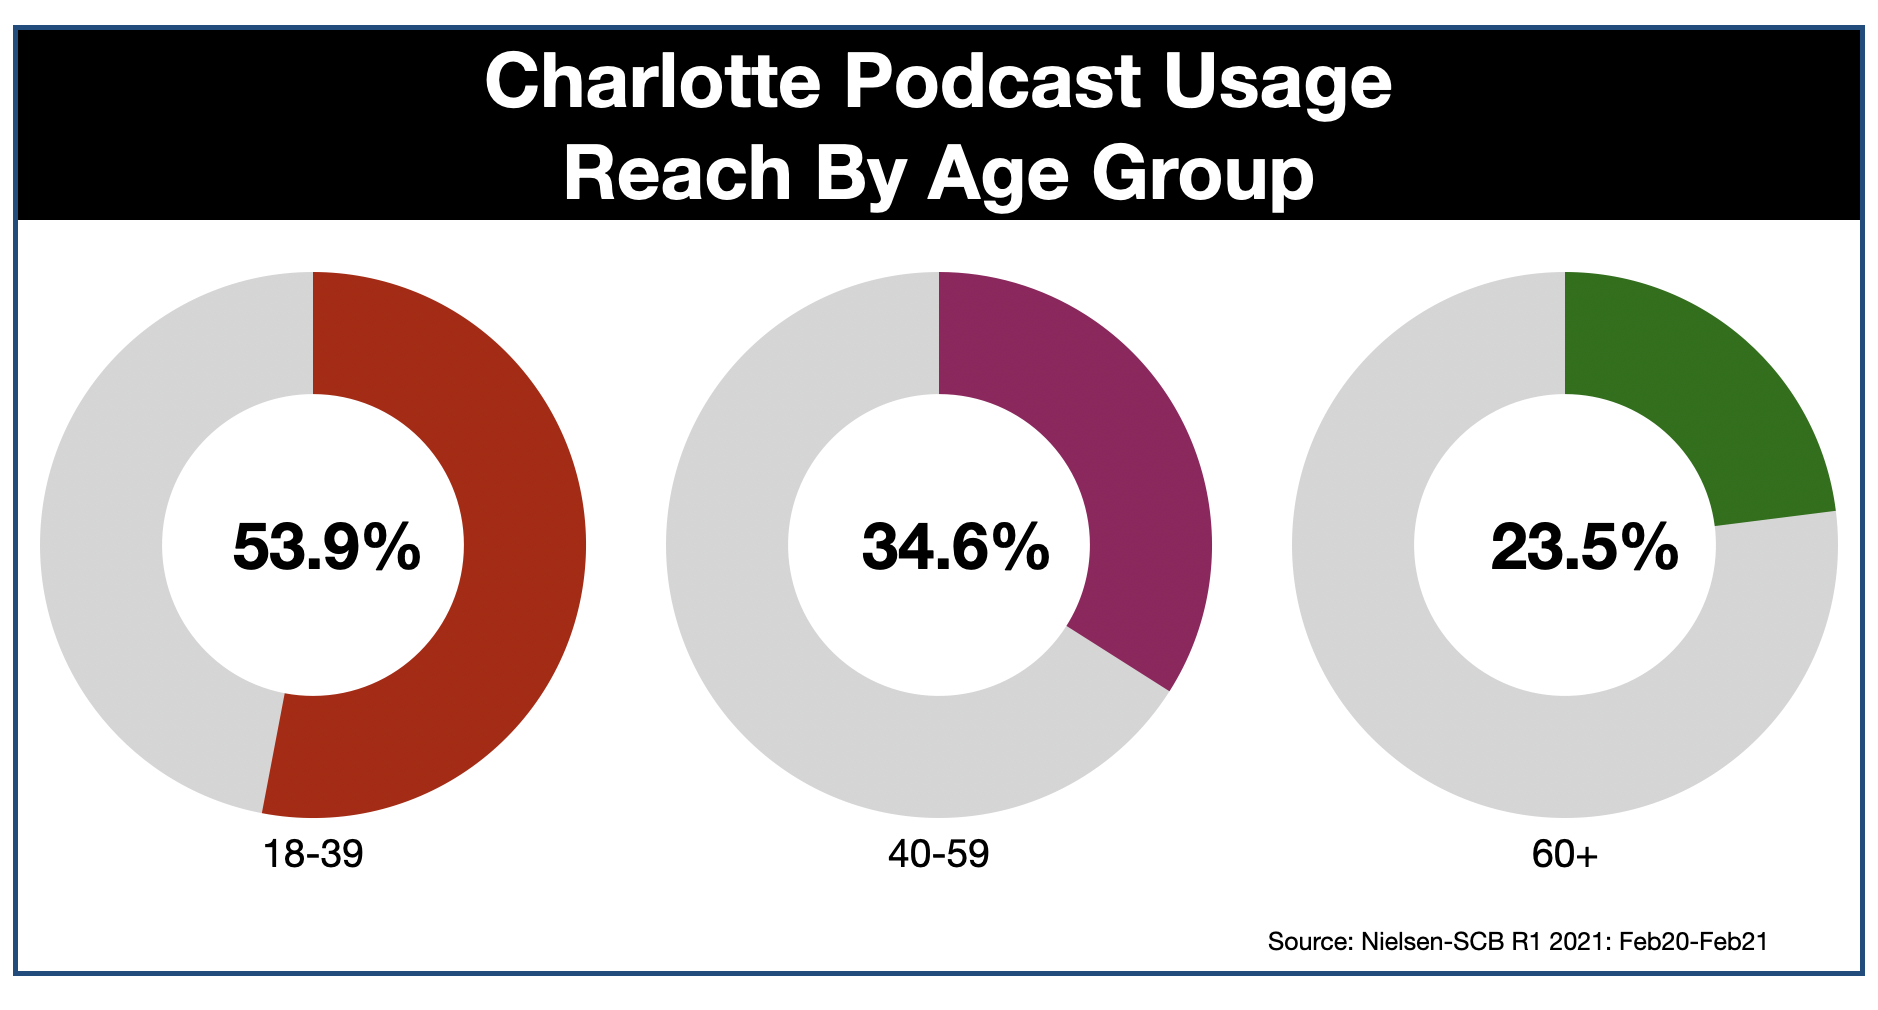 Podcast Advertising In Charlotte AGE